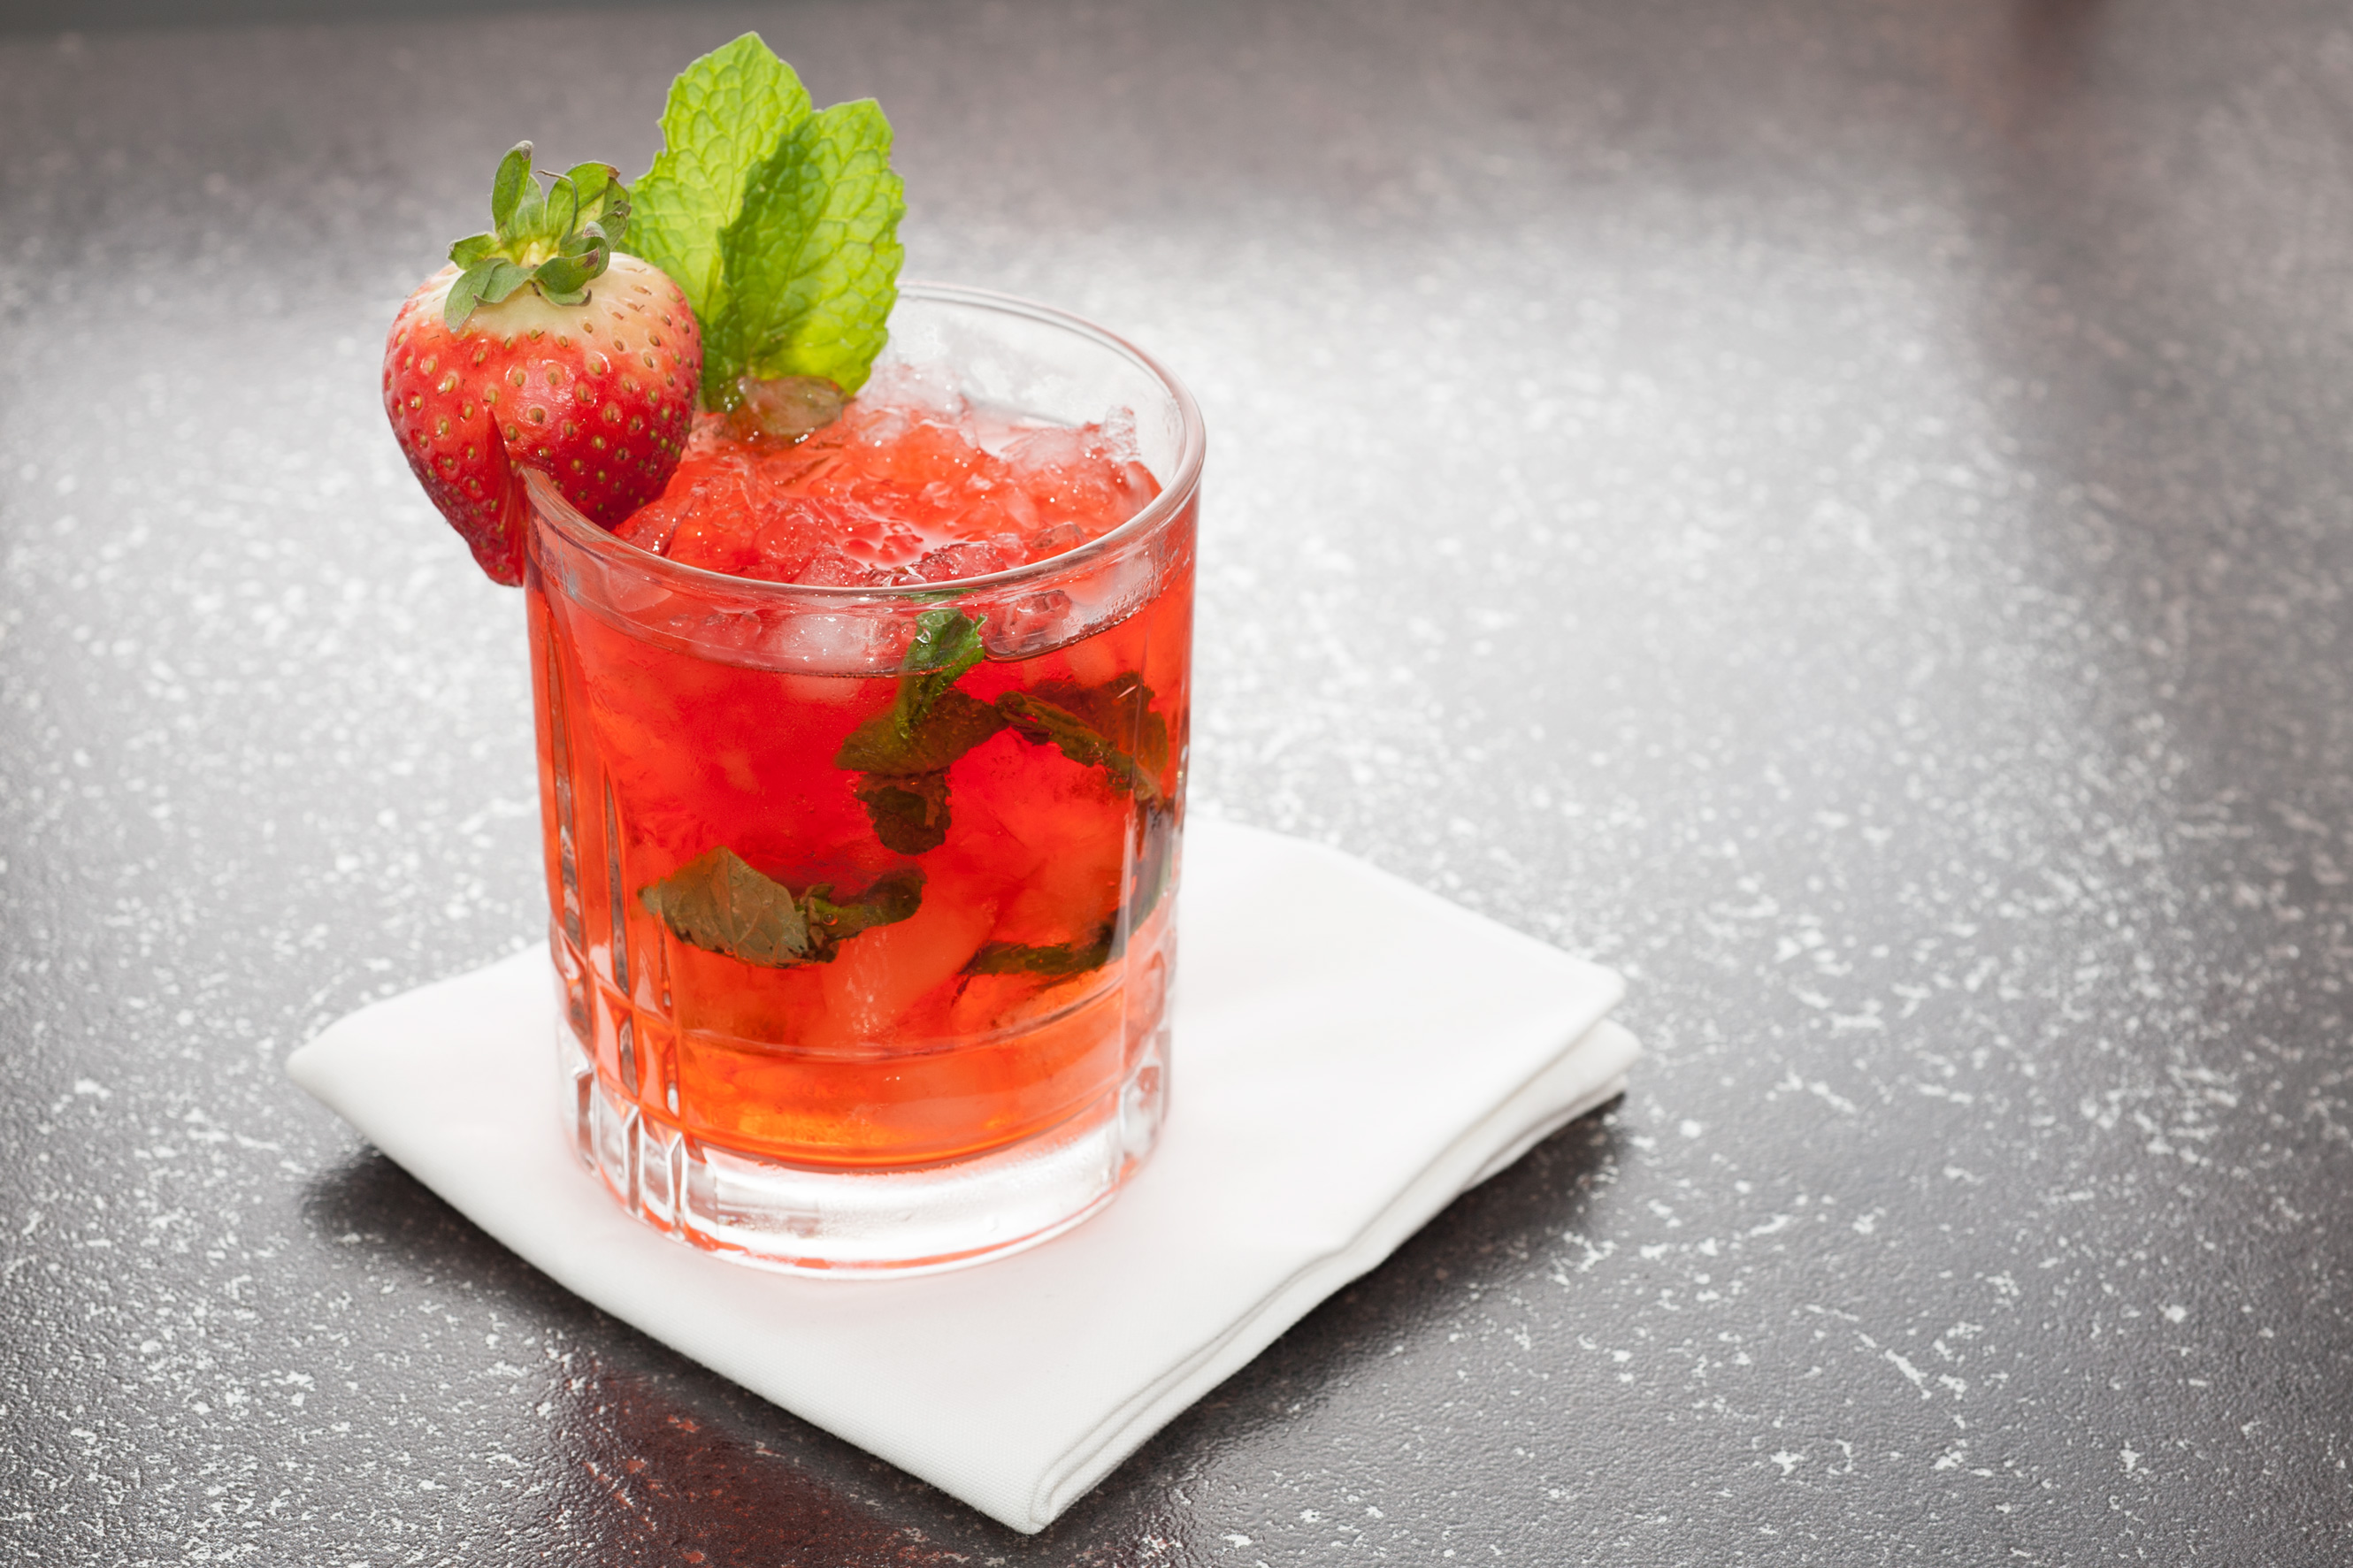 Try this refreshing Florida Strawberry Mint Julep